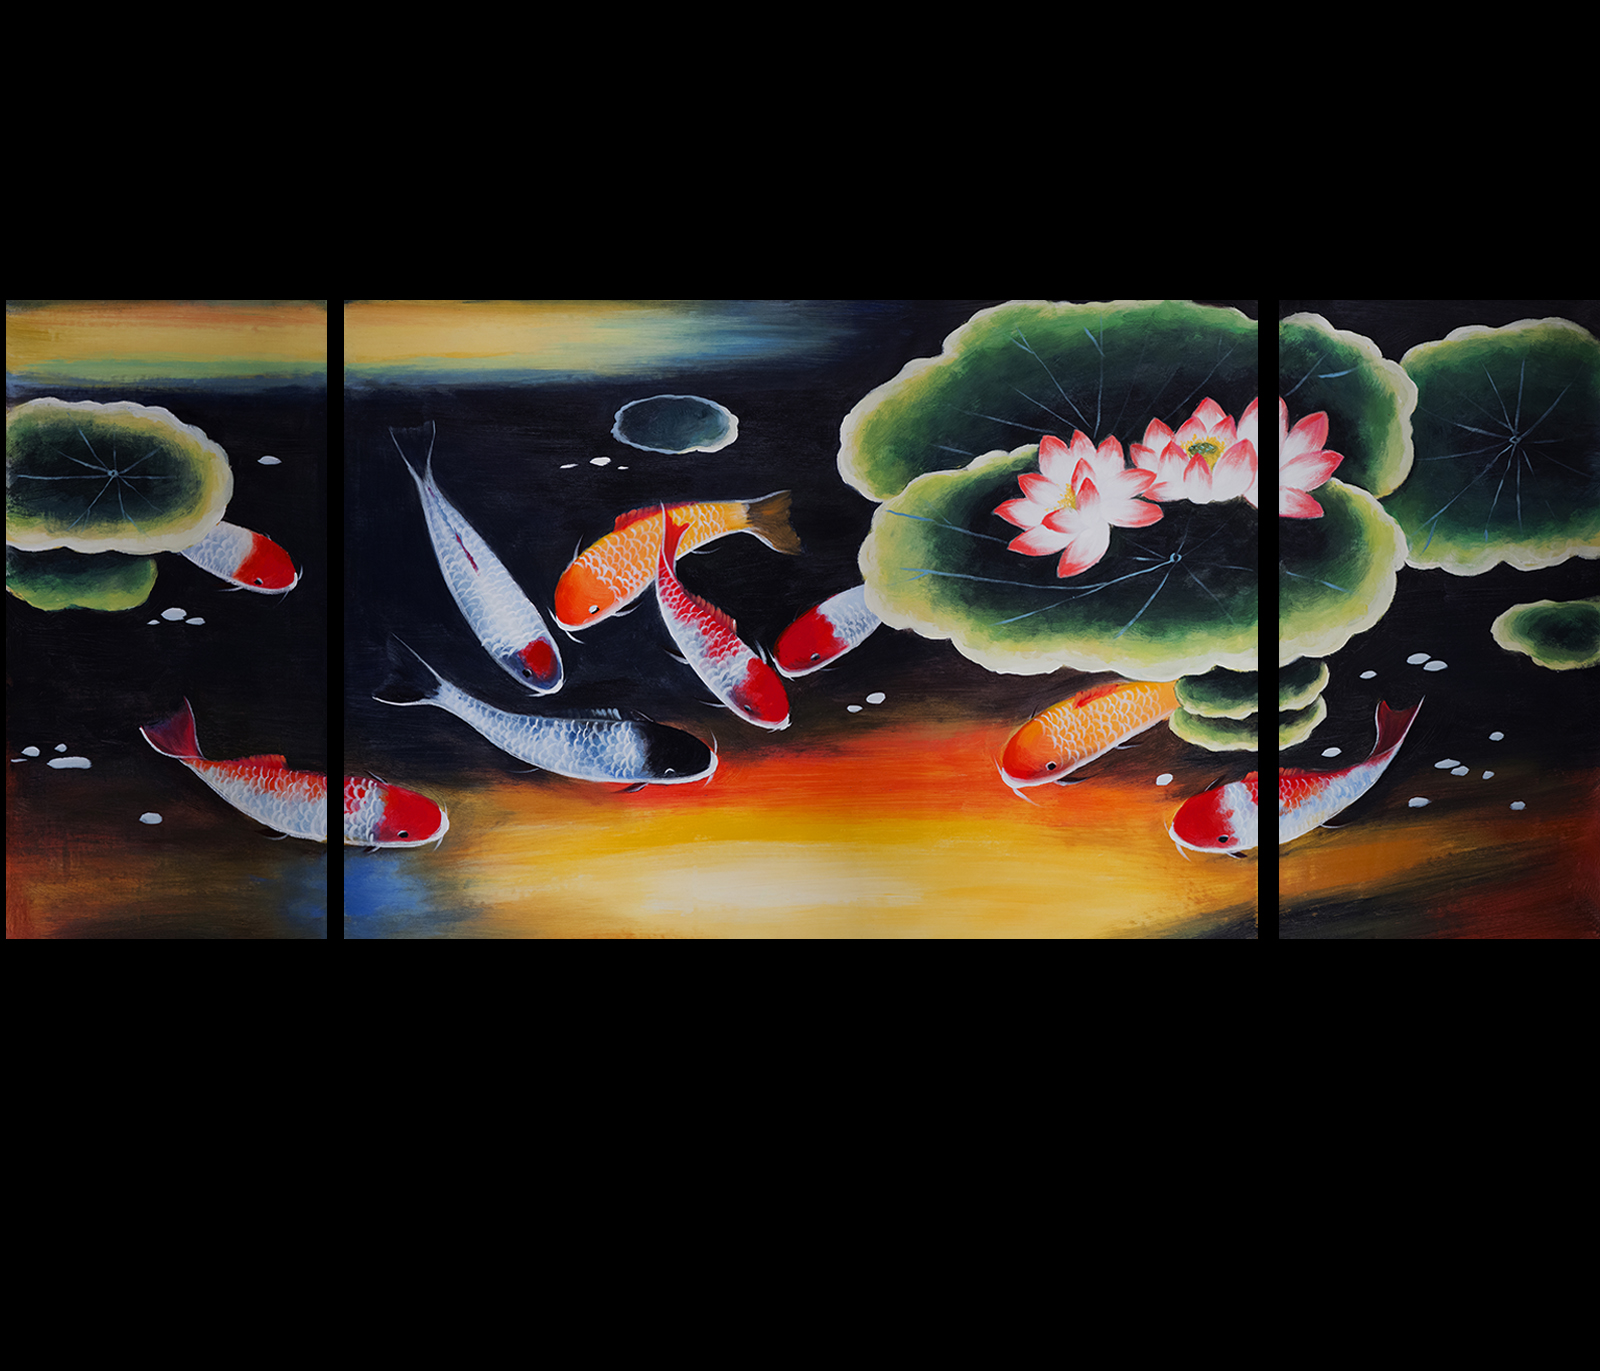 Original painting on canvas modern wall art decor koi fish for Koi artwork on canvas